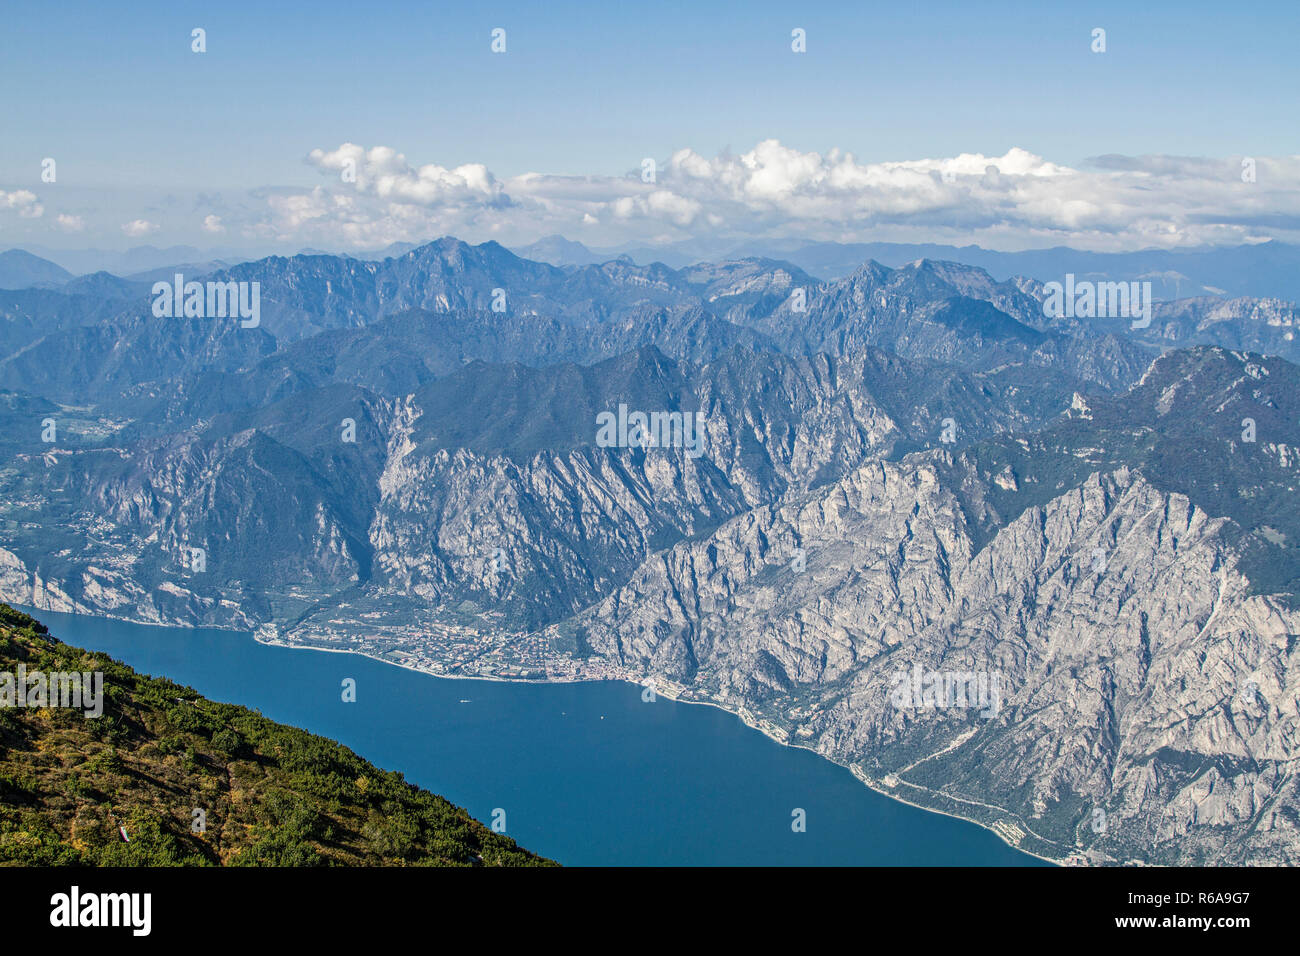 The Magnificent View Of Lake Garda Is The Reward For The Strenuous Climb To Monte Altissimo - Stock Image